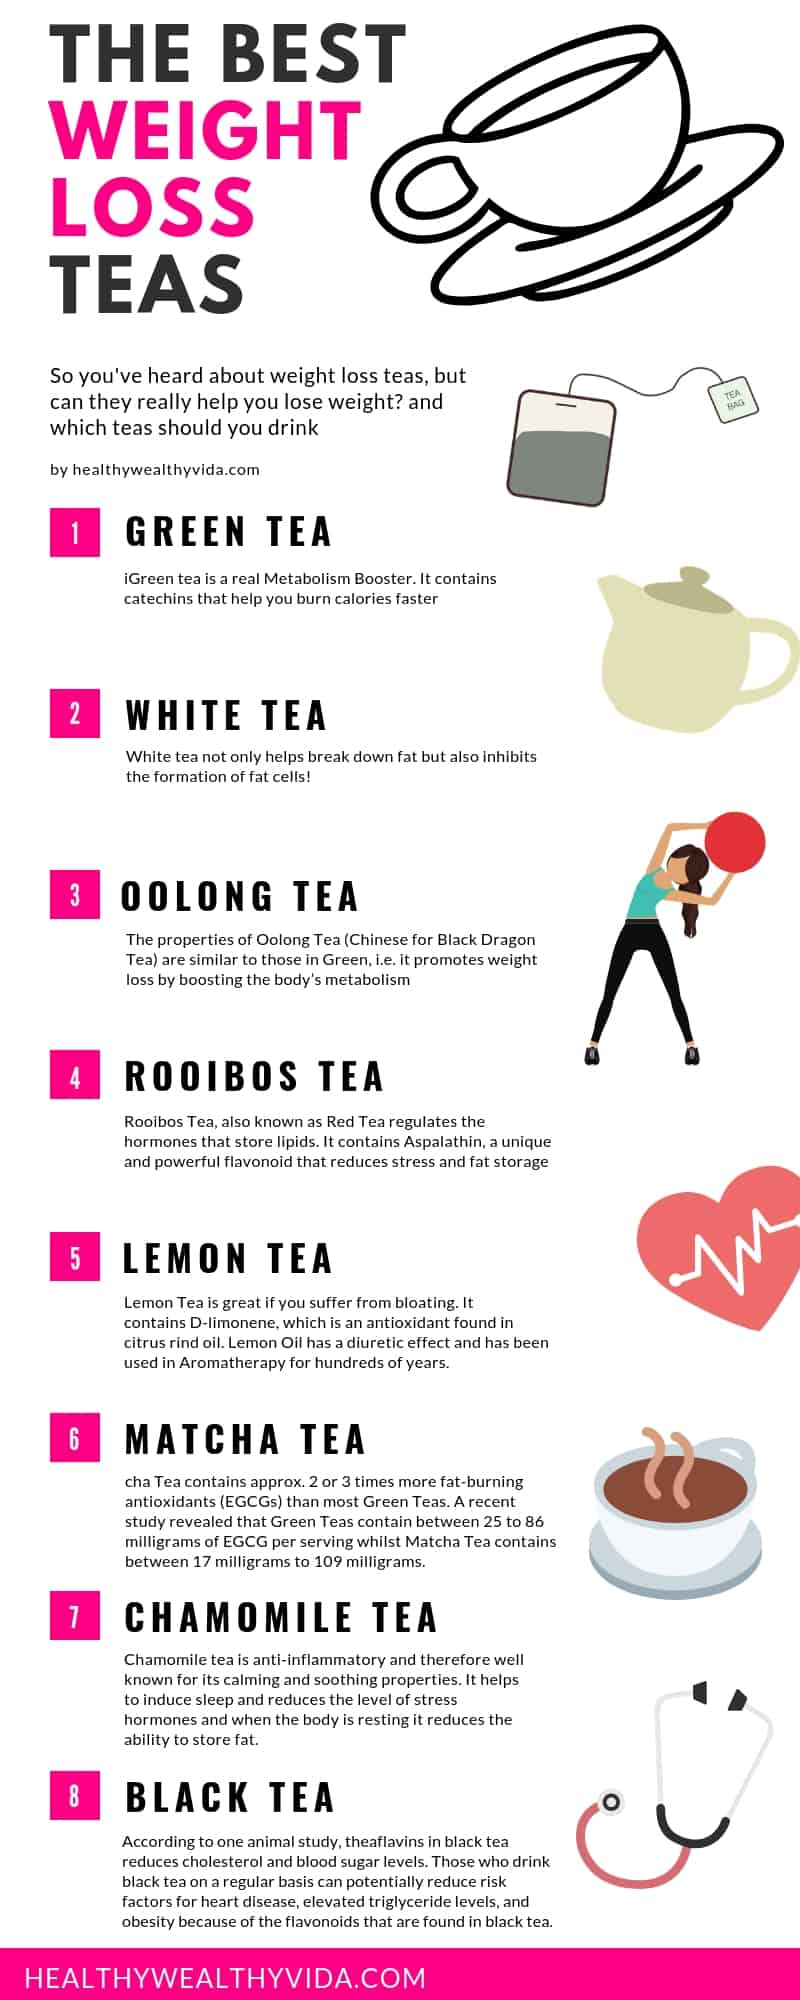 8 Teas That Can Boost Weight Loss